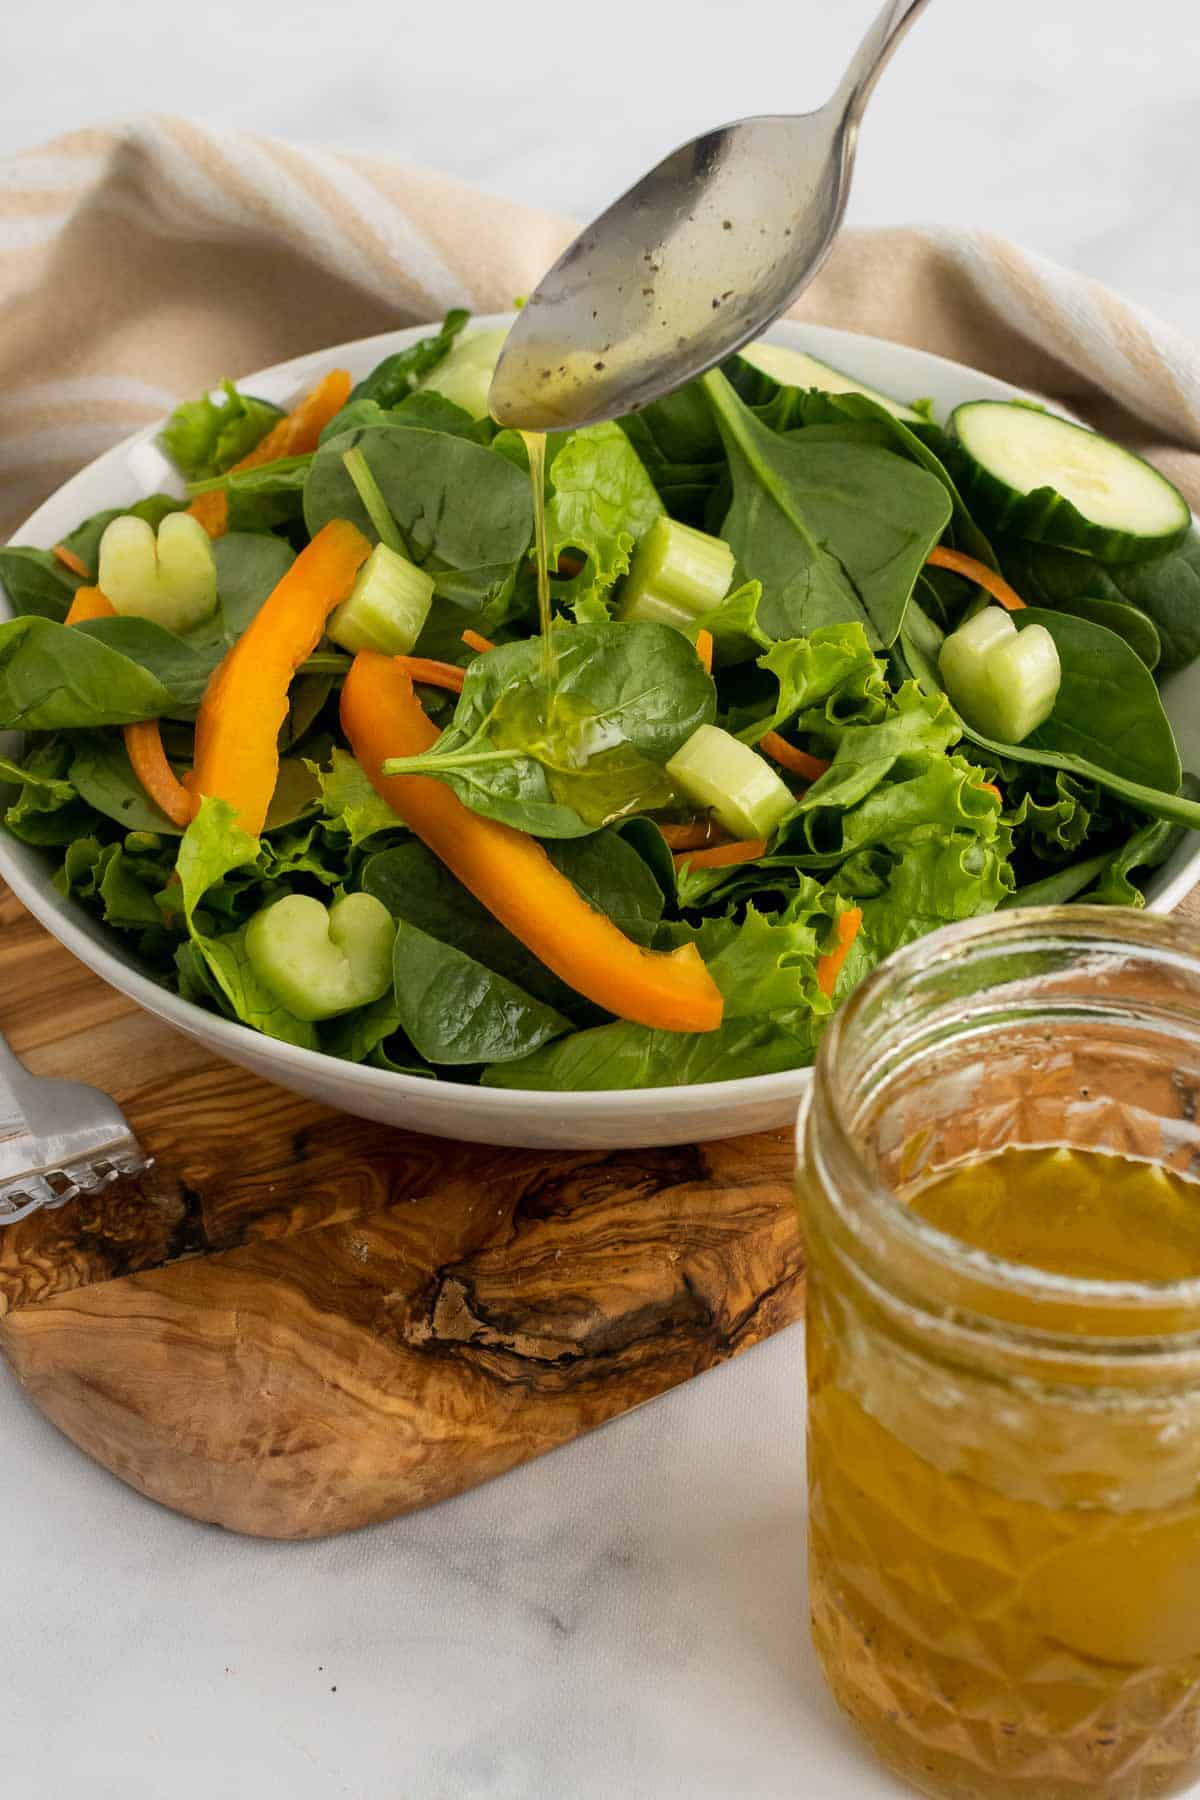 Spoon with fruity white balsamic vinaigrette over a salad bowl